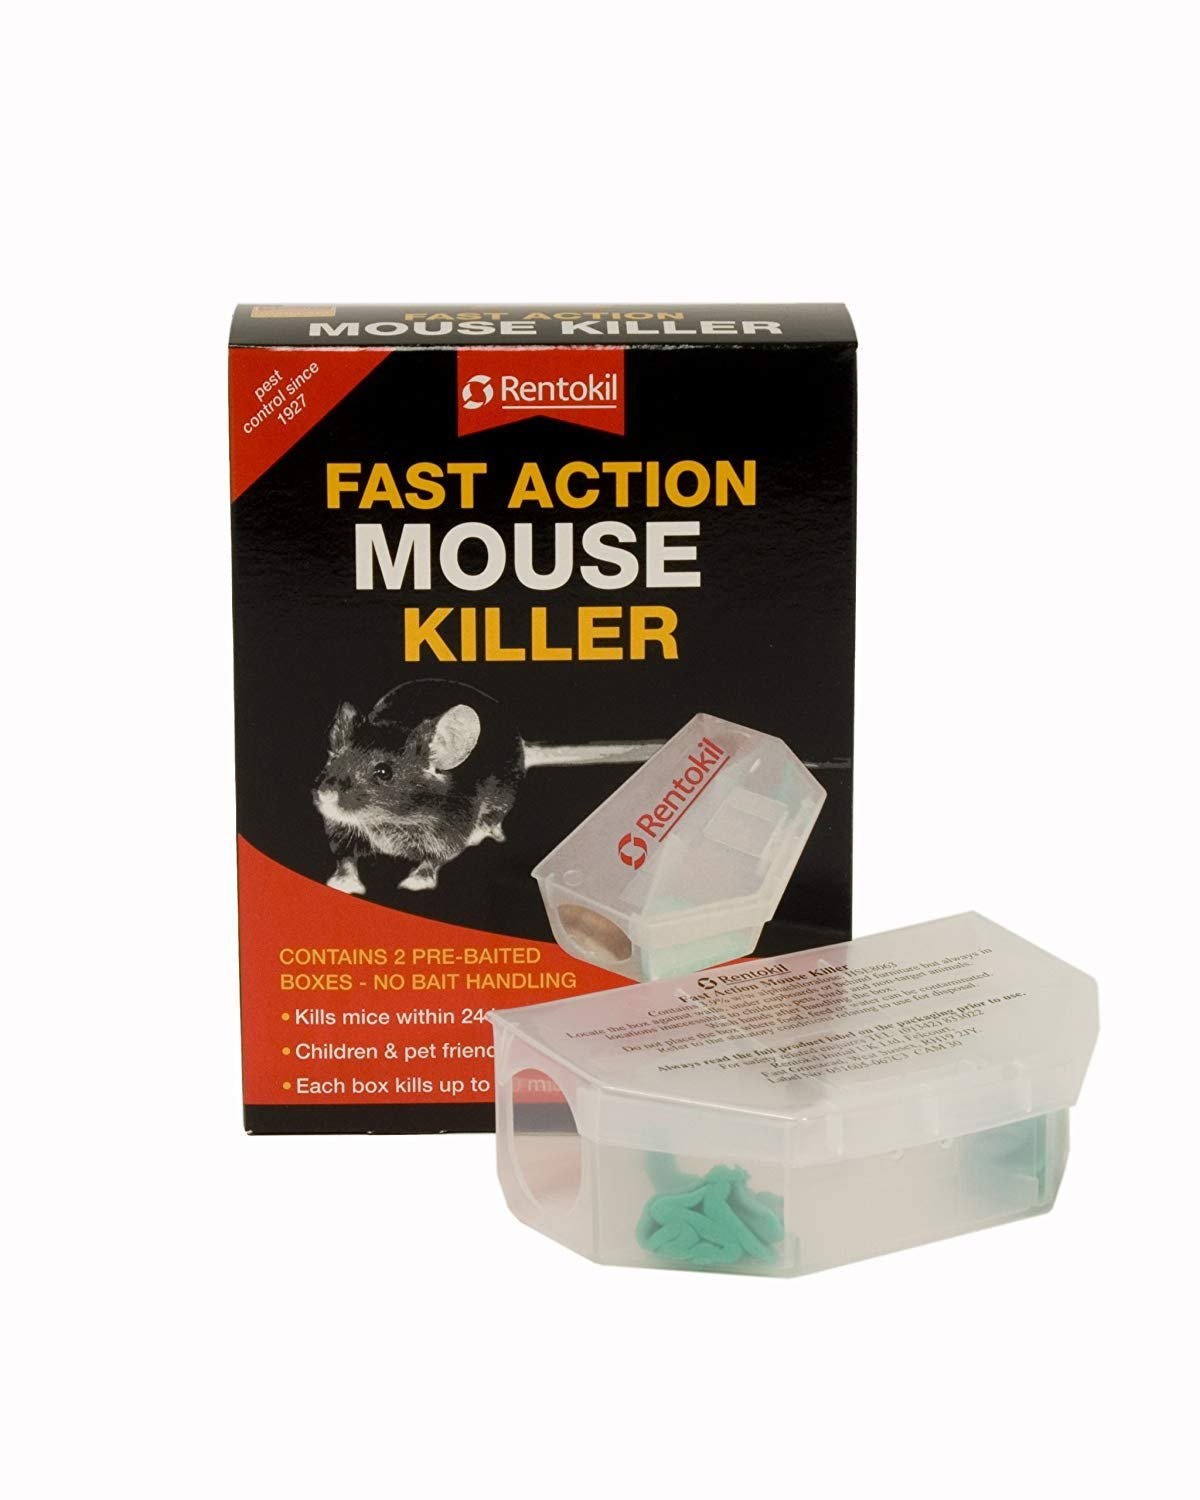 Centurion 90102 PSF135 Fast Action Mouse Killer Twin pack - Multi-Color Toolbank RKLPSF135 Misc Pest_Control